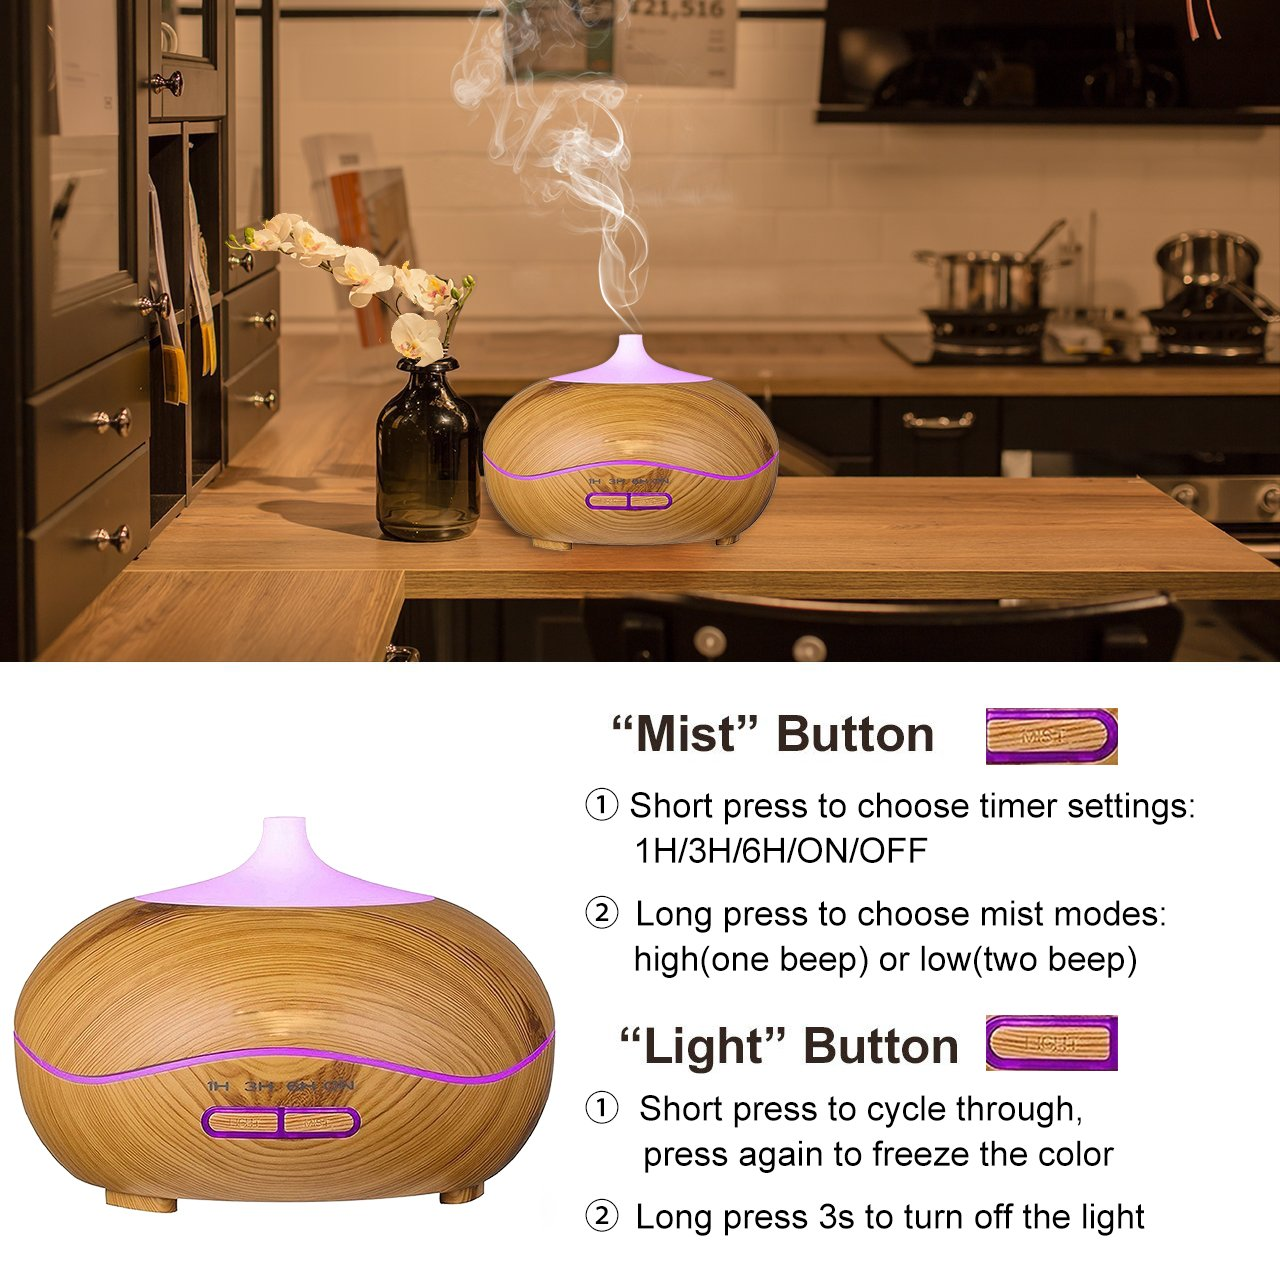 Aroma Essential Oil Diffuser, UNICOM 300ml Ultrasonic Cool Mist Air Humidifier Wood Grain Aroma Diffuser Waterless Auto Shut-off and 7 Color LED Lights Changing for Office Baby Bedroom Yoga Spa (242W)